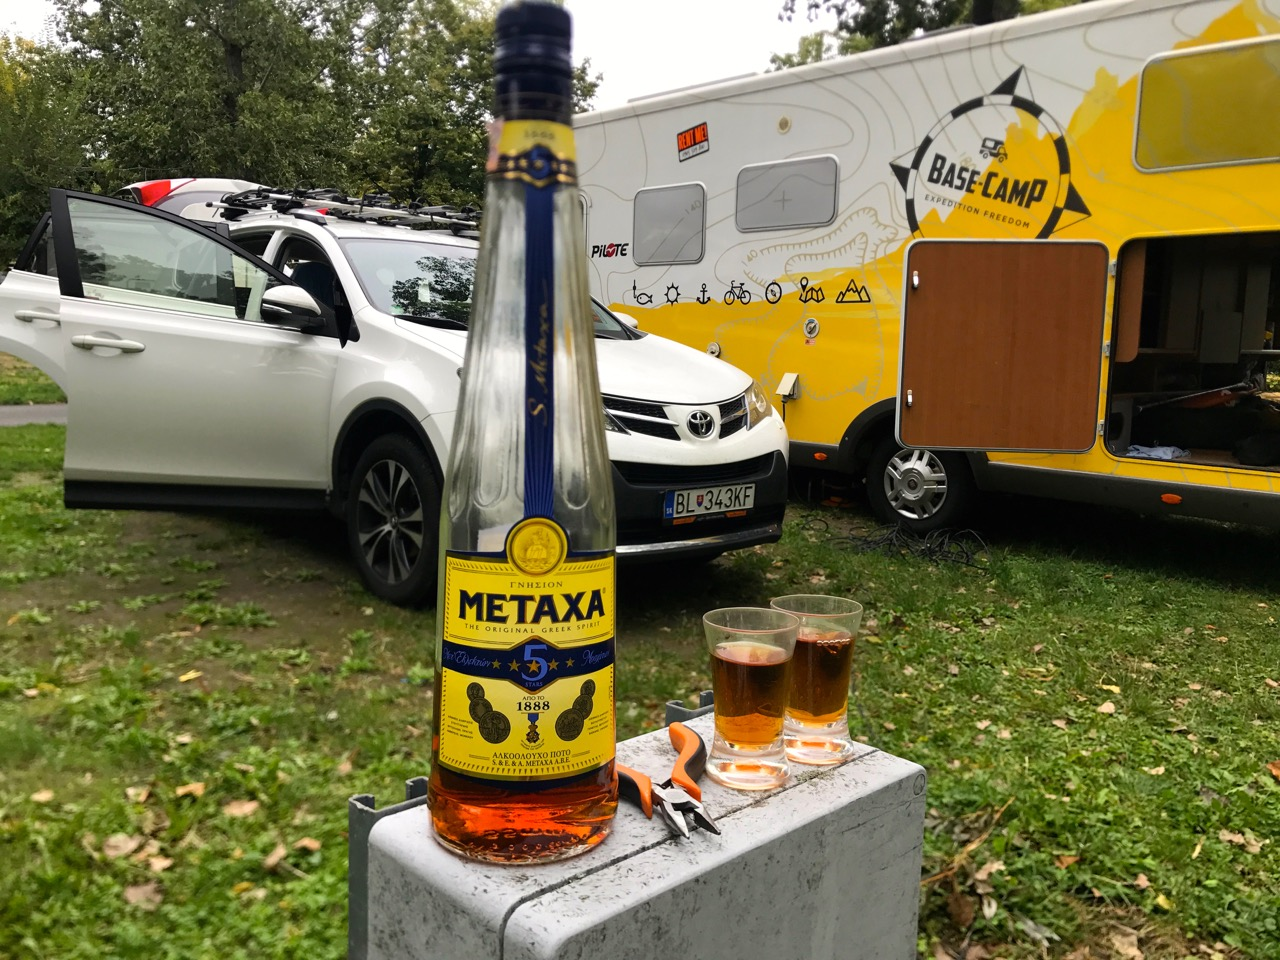 https://www.kempy-chaty.cz/sites/default/files/turistika/balaton_camping_karavan2.jpeg